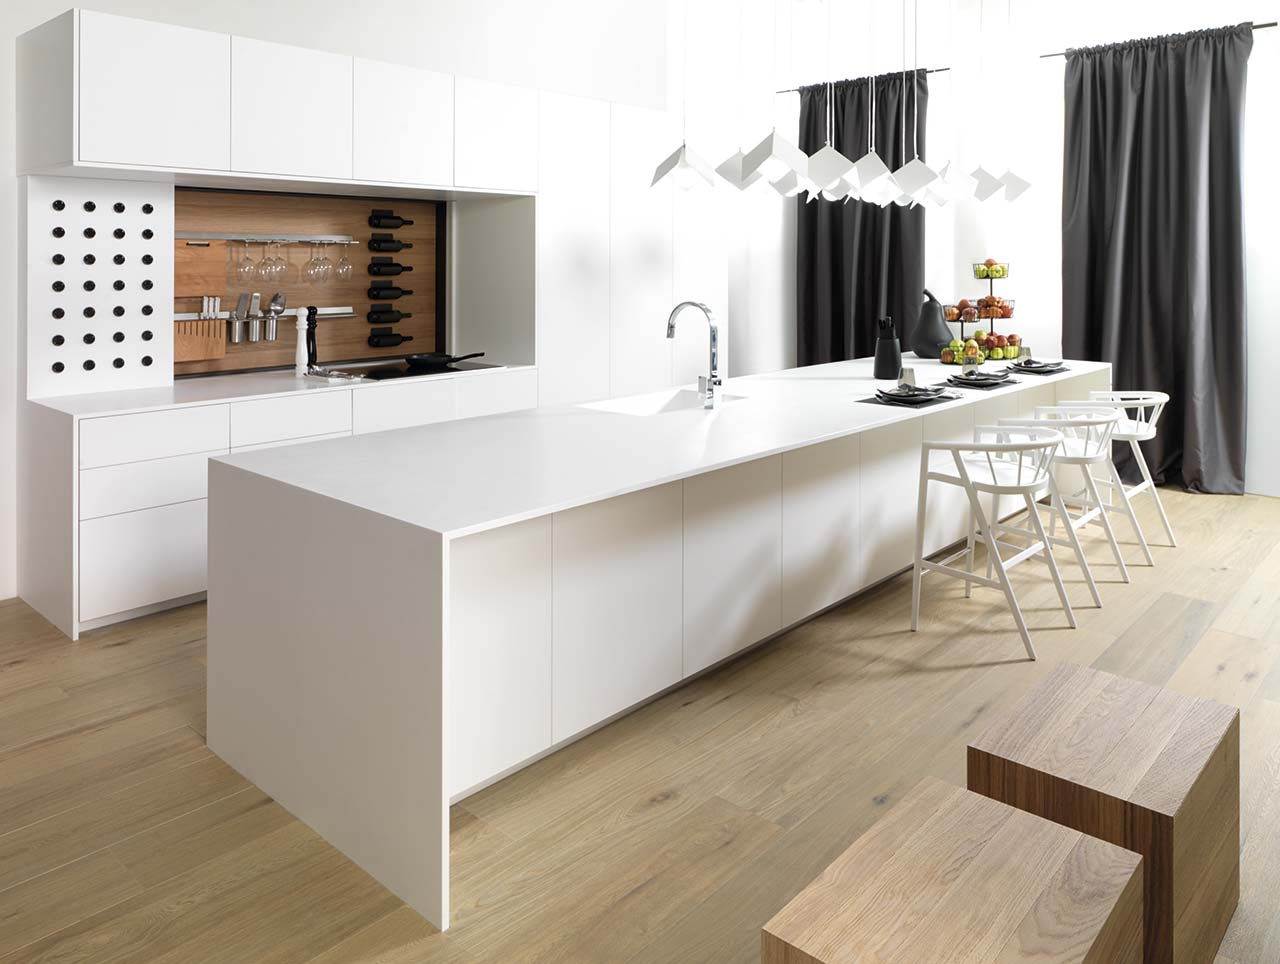 KRION Solid Surface in Emotions E400 Gamadecor